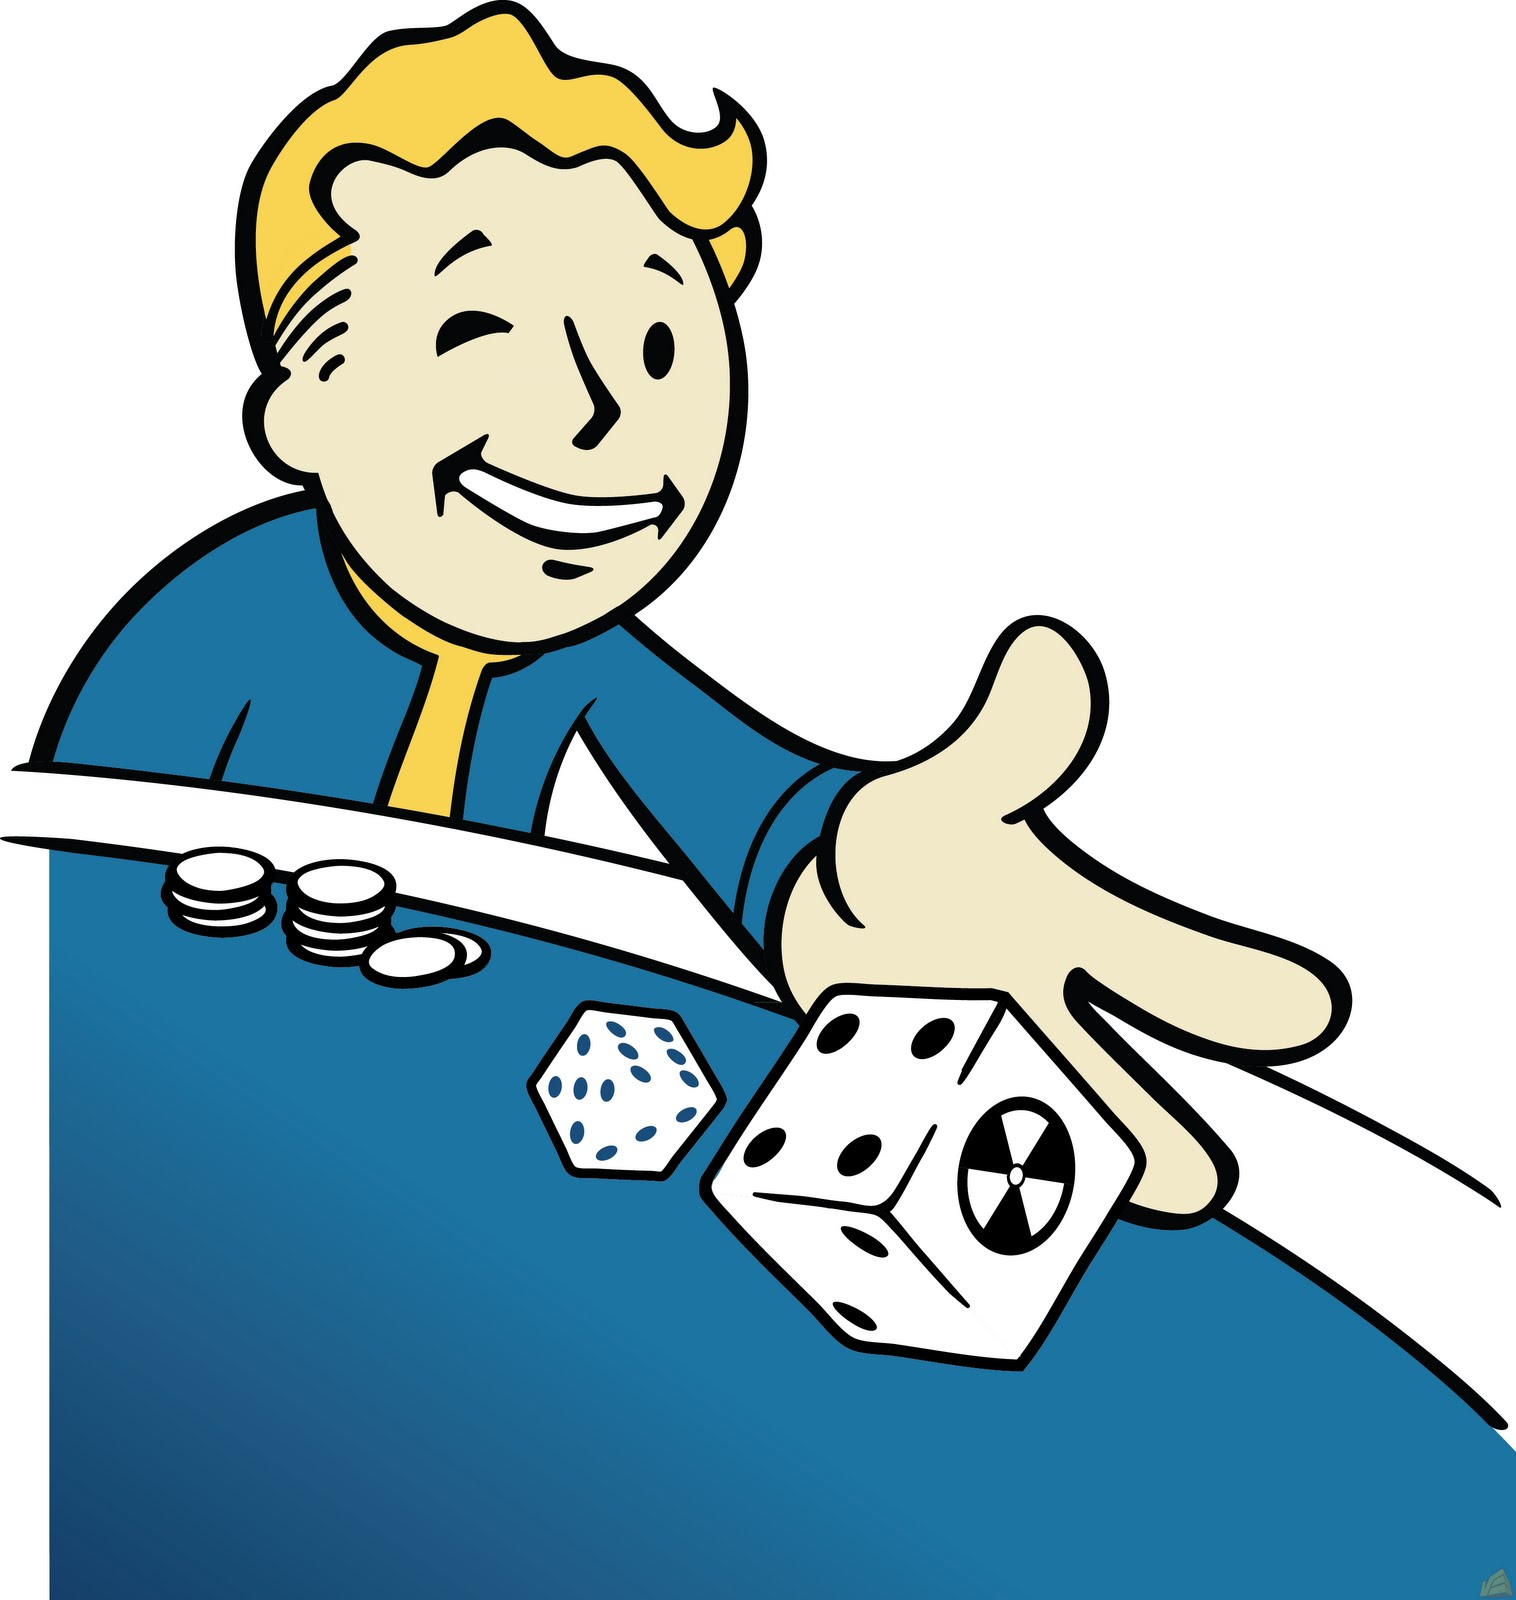 Fallout Clipart guy - Fallout Clipart